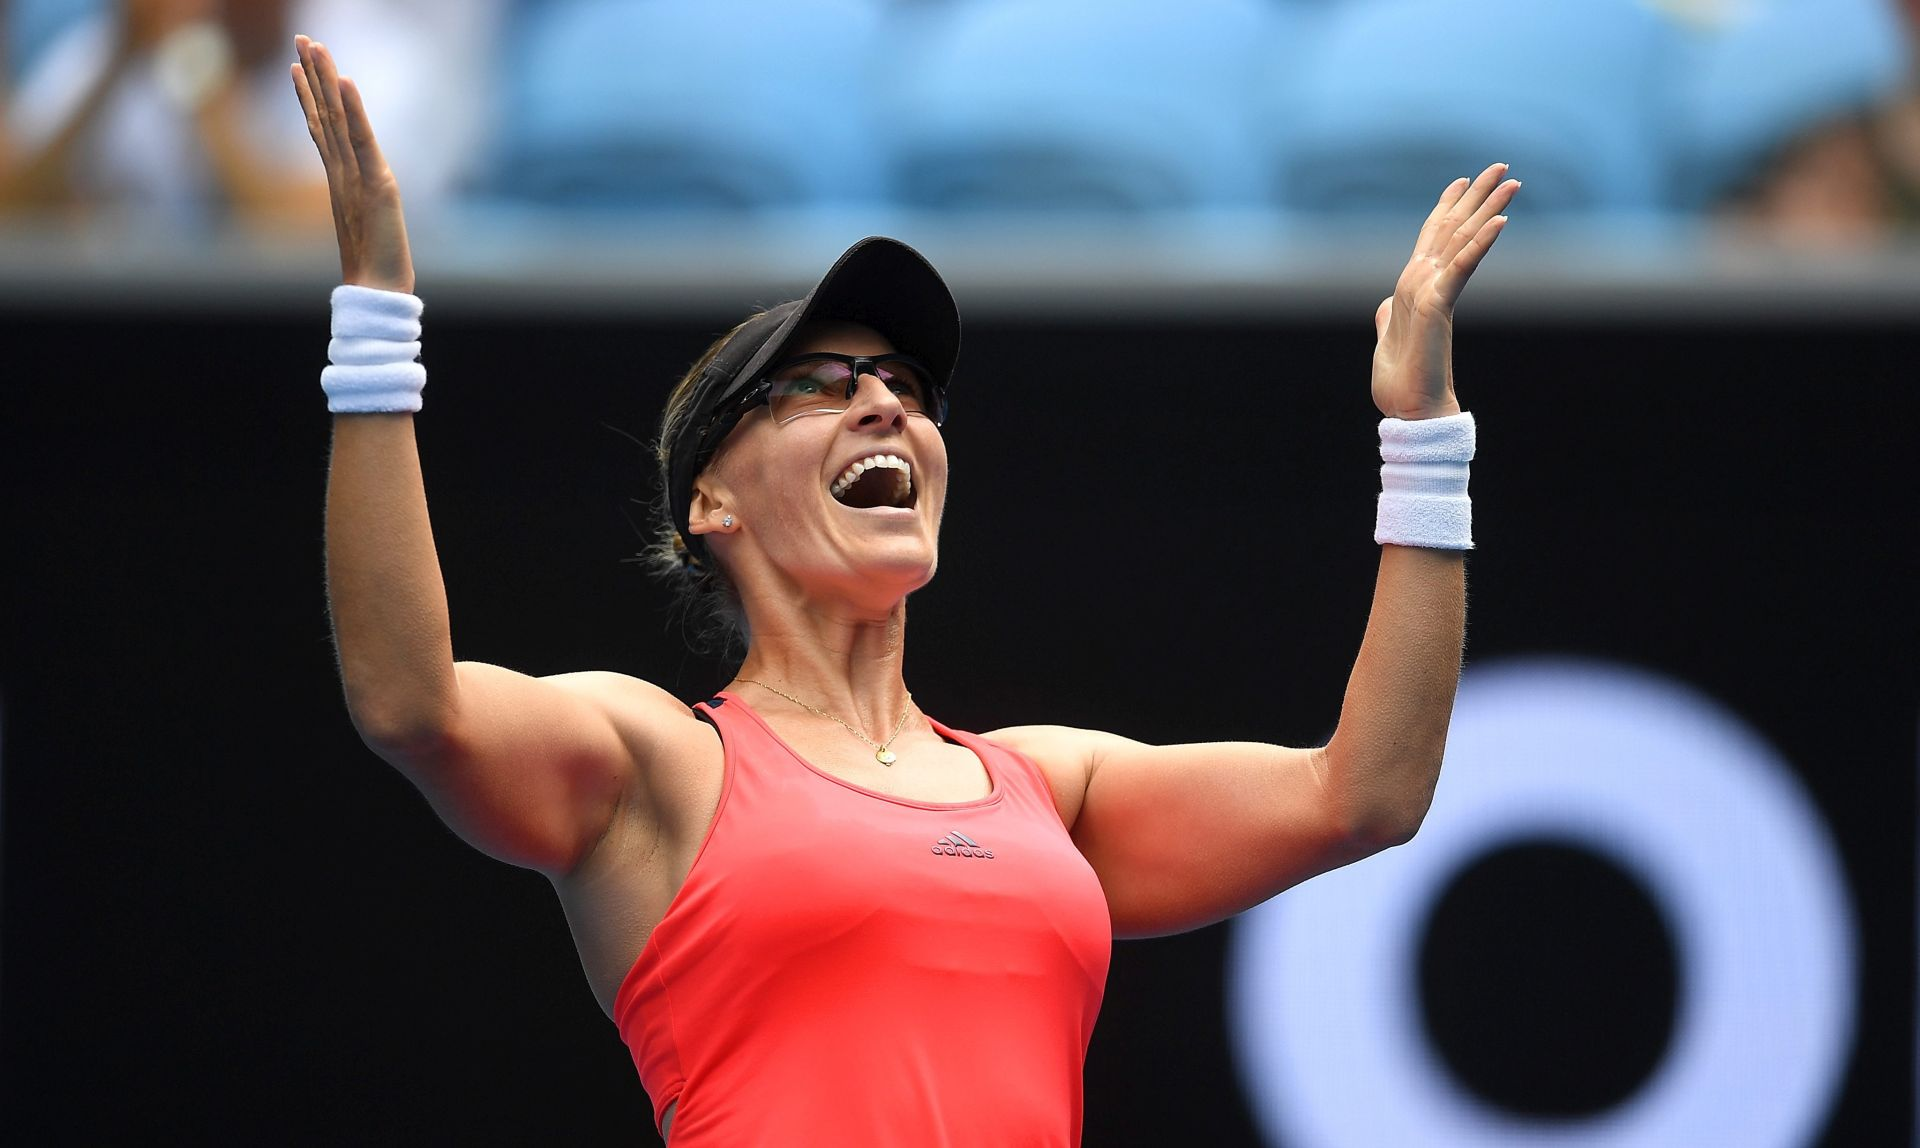 epa05743360 Mirjana Lucic-Baroni of Croatia celebrates her win over Jennifer Brady of the USA during round four of the Women's Singles at the Australian Open Grand Slam tennis tournament in Melbourne, Victoria, Australia, 23 January 2017. EPA/LUKAS COCH AUSTRALIA AND NEW ZEALAND OUT